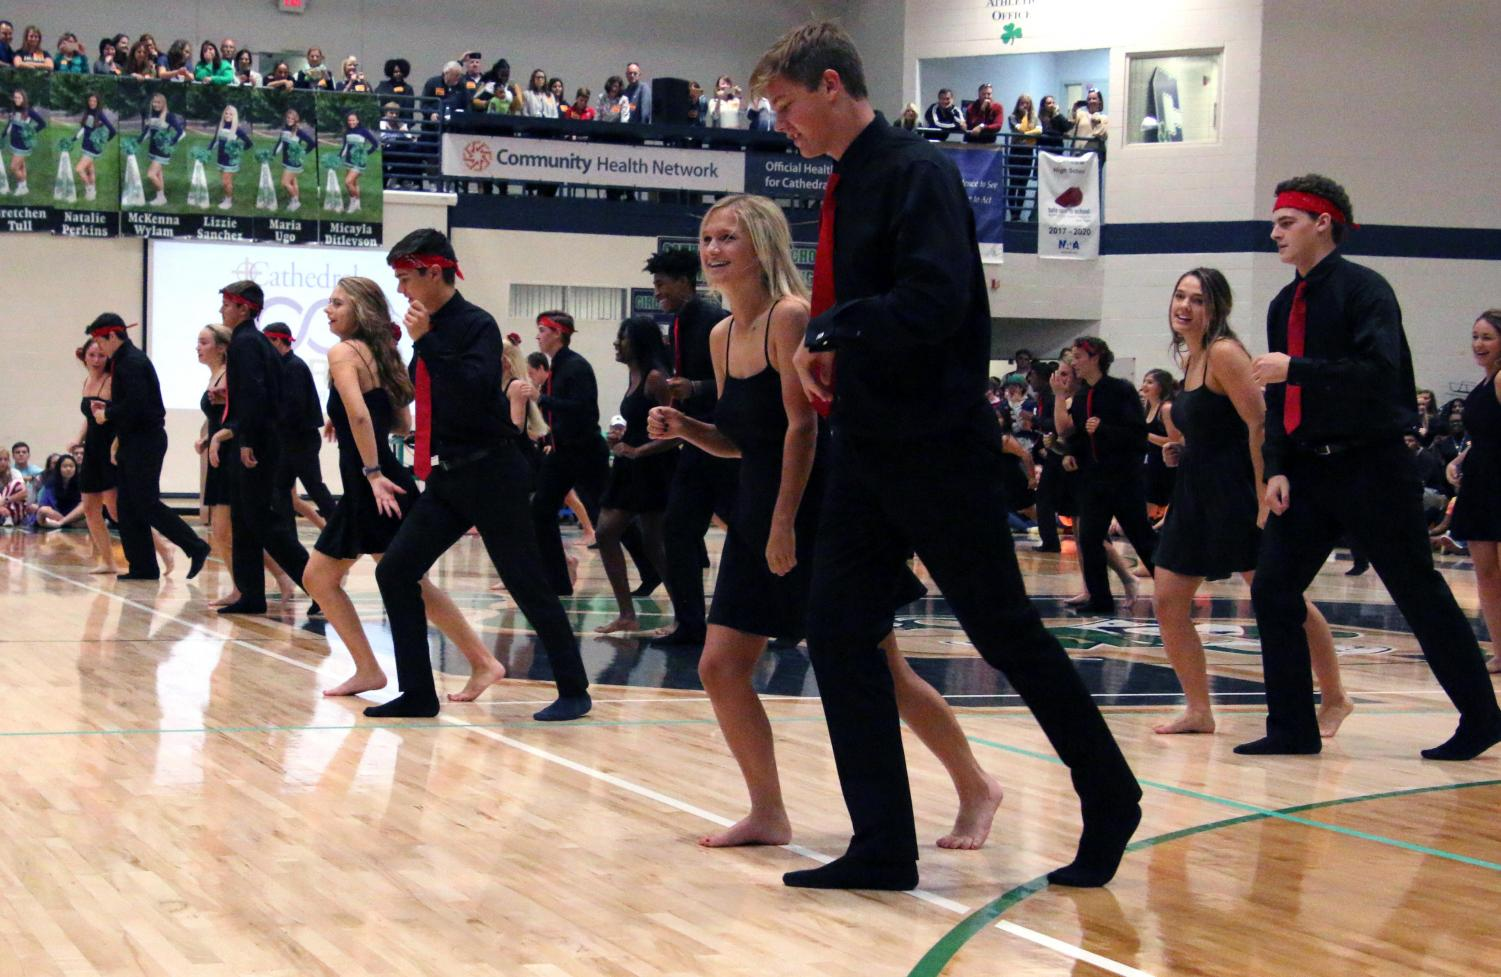 Members of the Latin Dance team perform at last year's Irish 500 assembly.